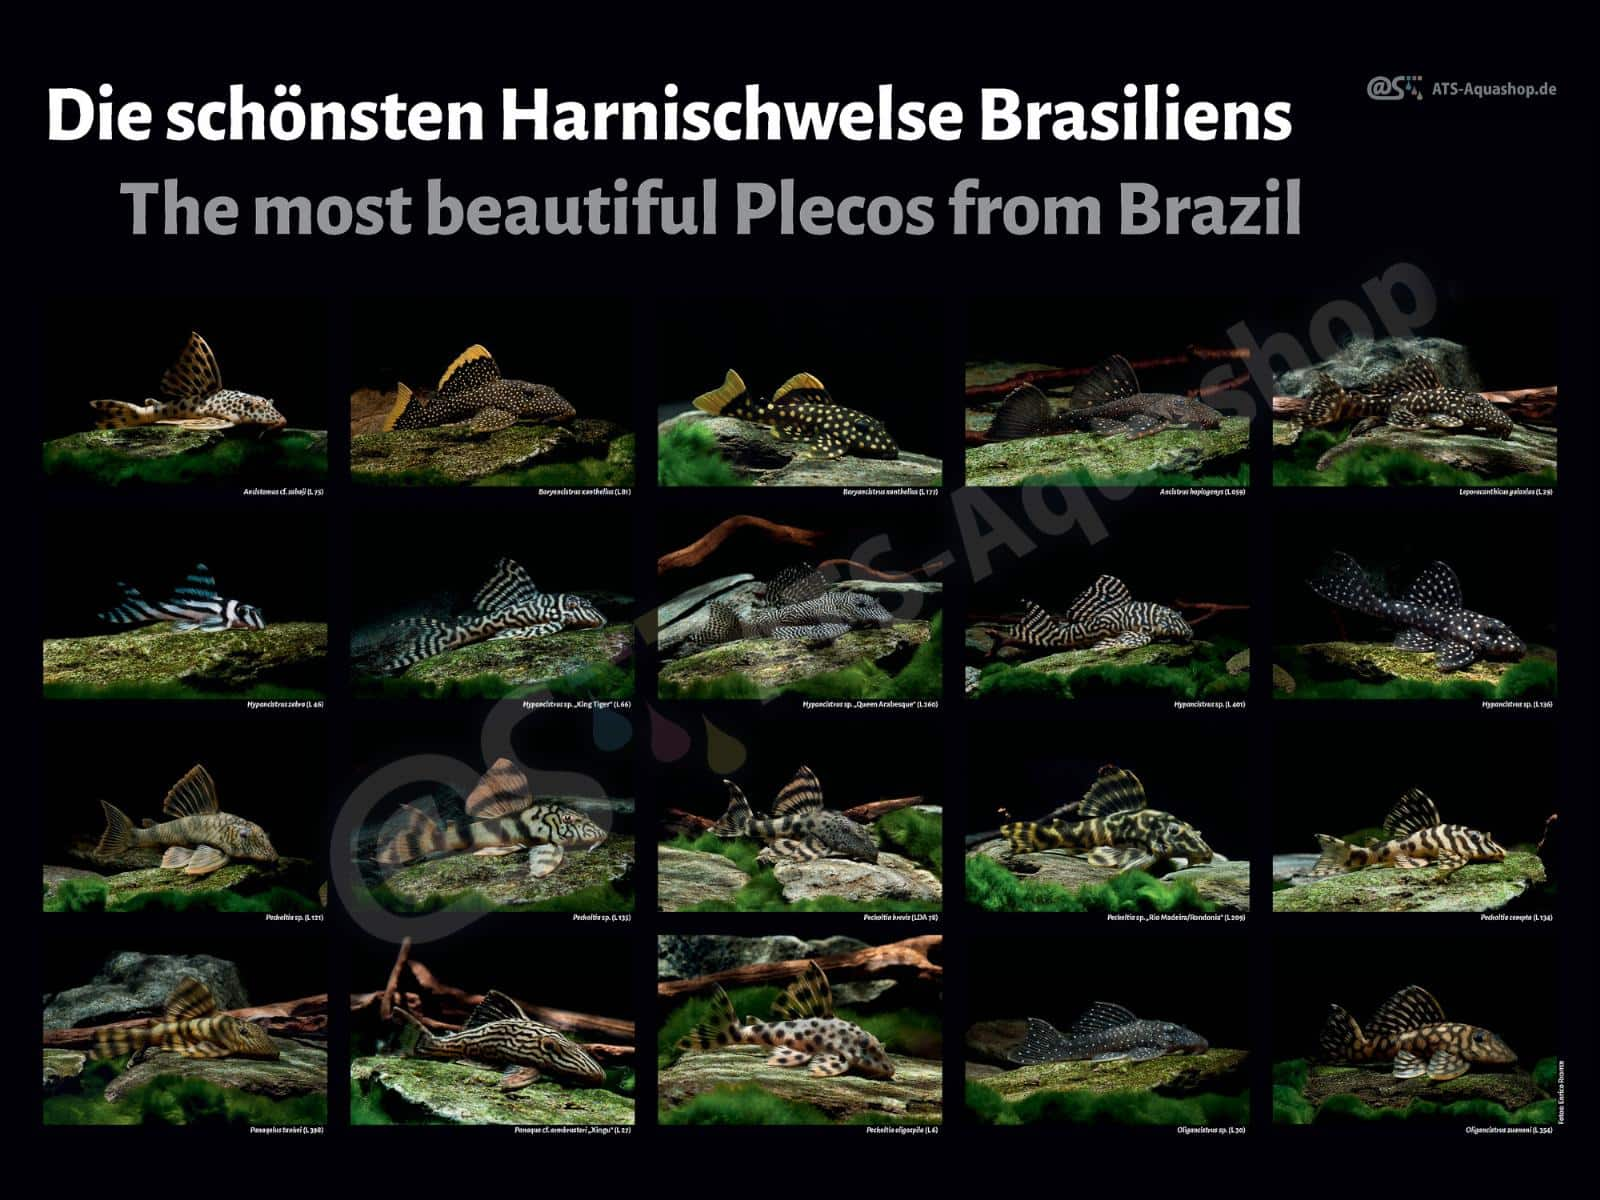 Posters: The most beautiful Plecos from Brazil